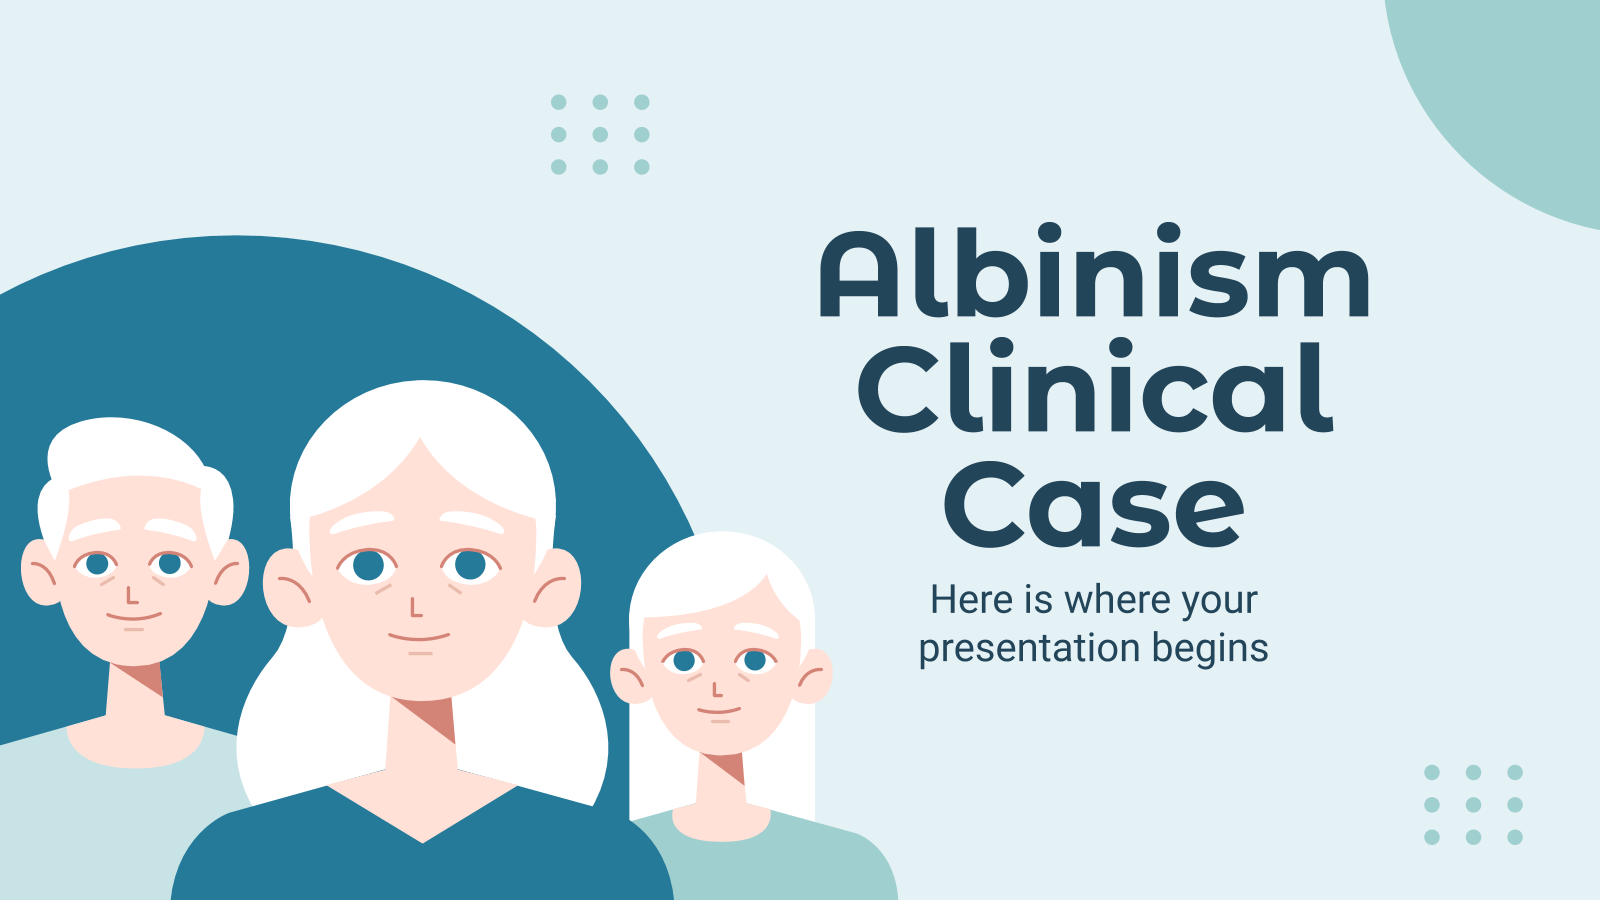 Albinism Clinical Case presentation template